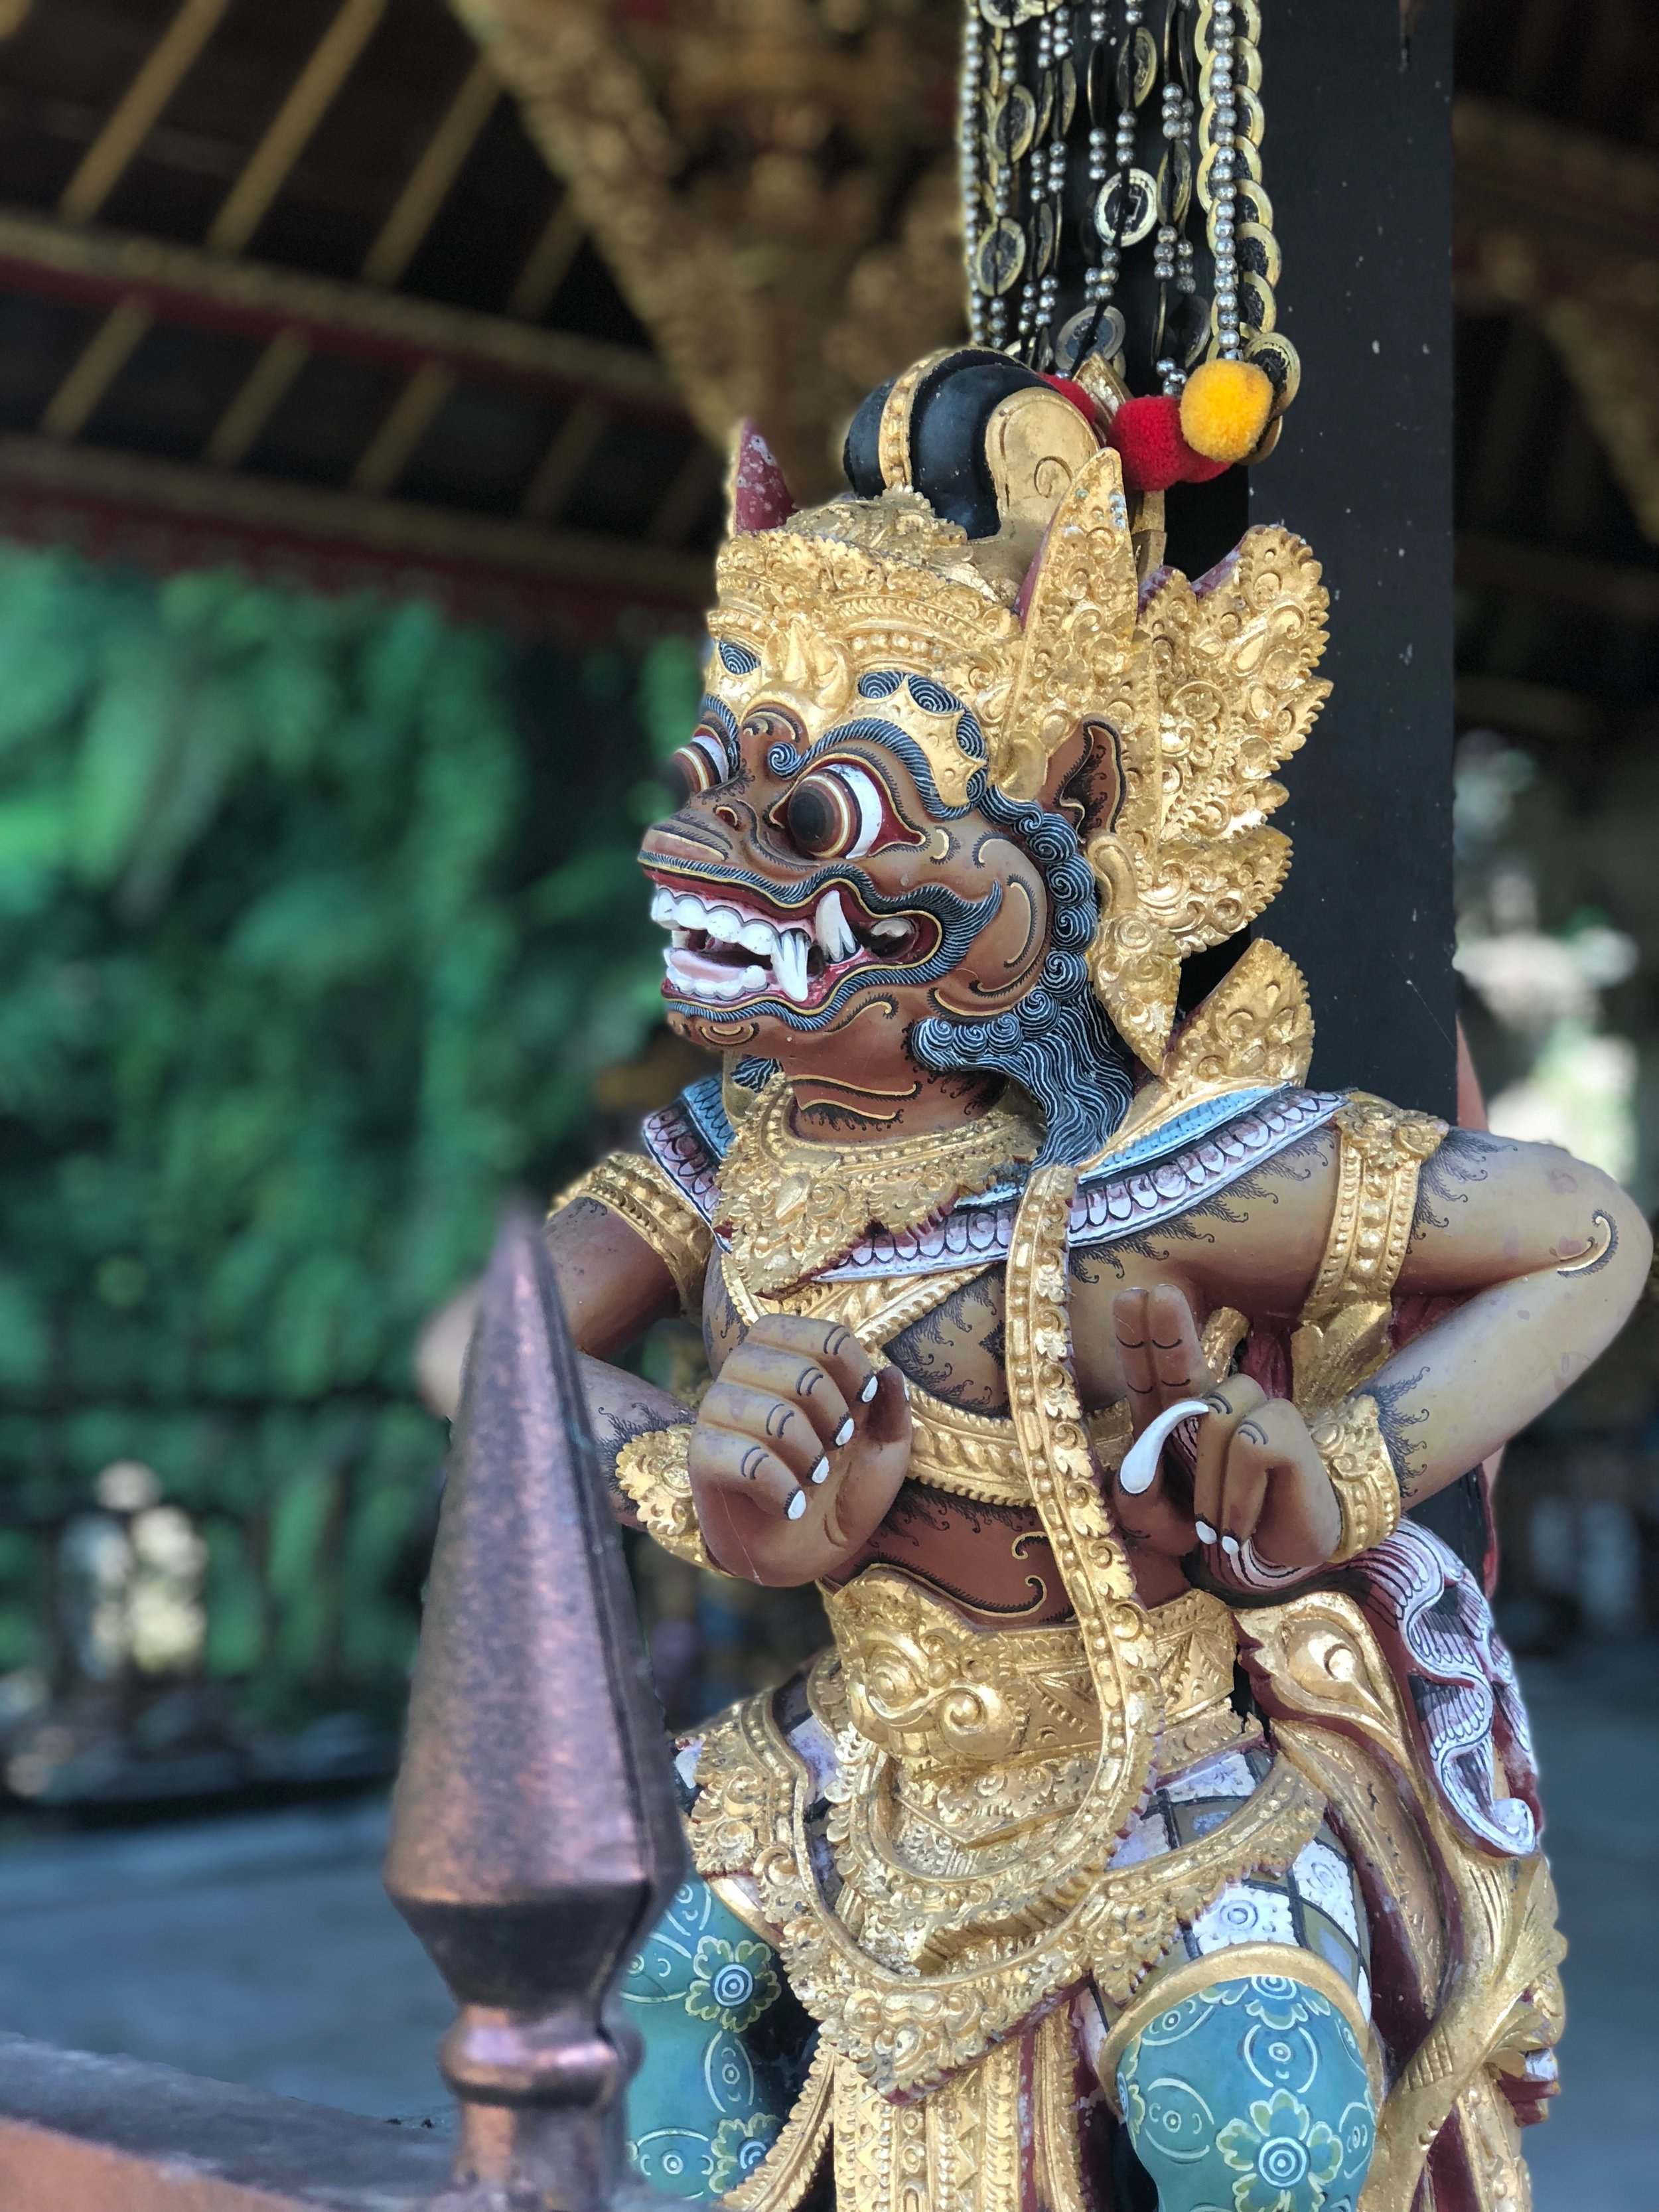 Statues act as guardian spirits